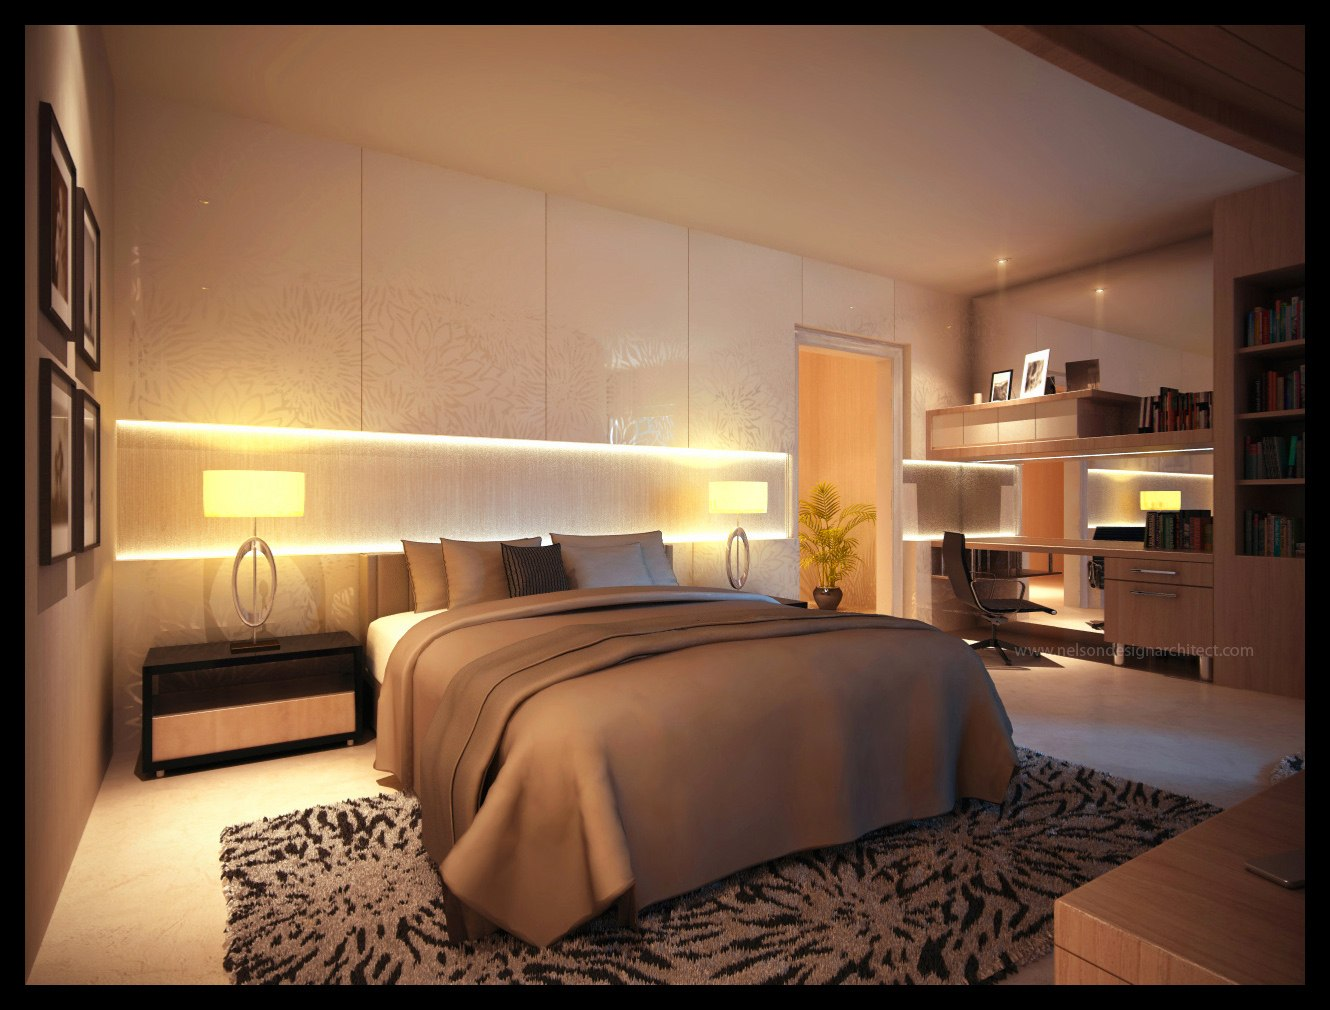 cream bedroom ideas terrys fabrics s blog 45 modern bedroom ideas for you and your home interior